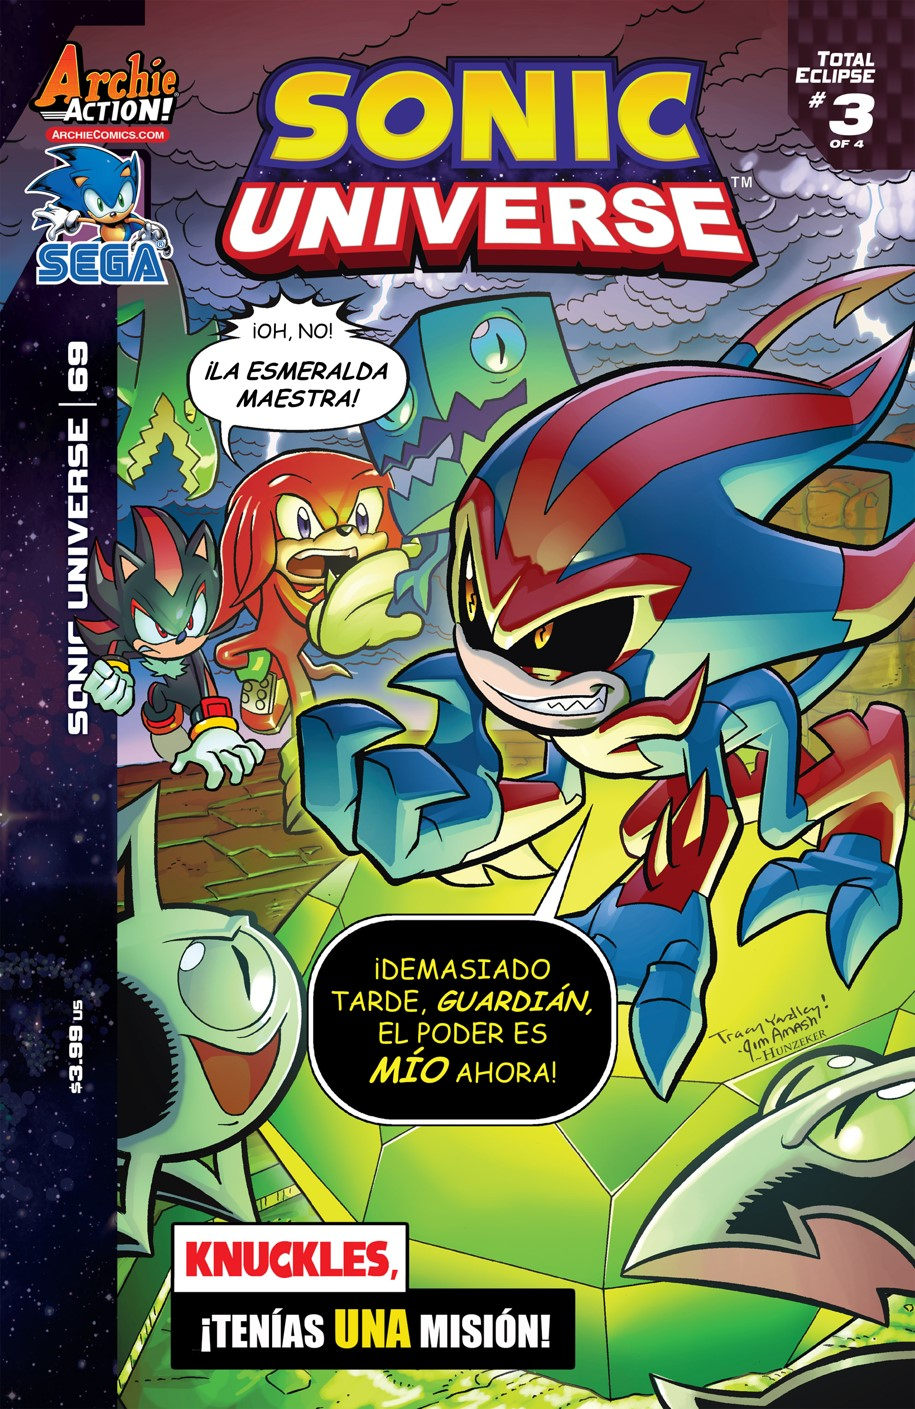 Sonic Universe Issue 69